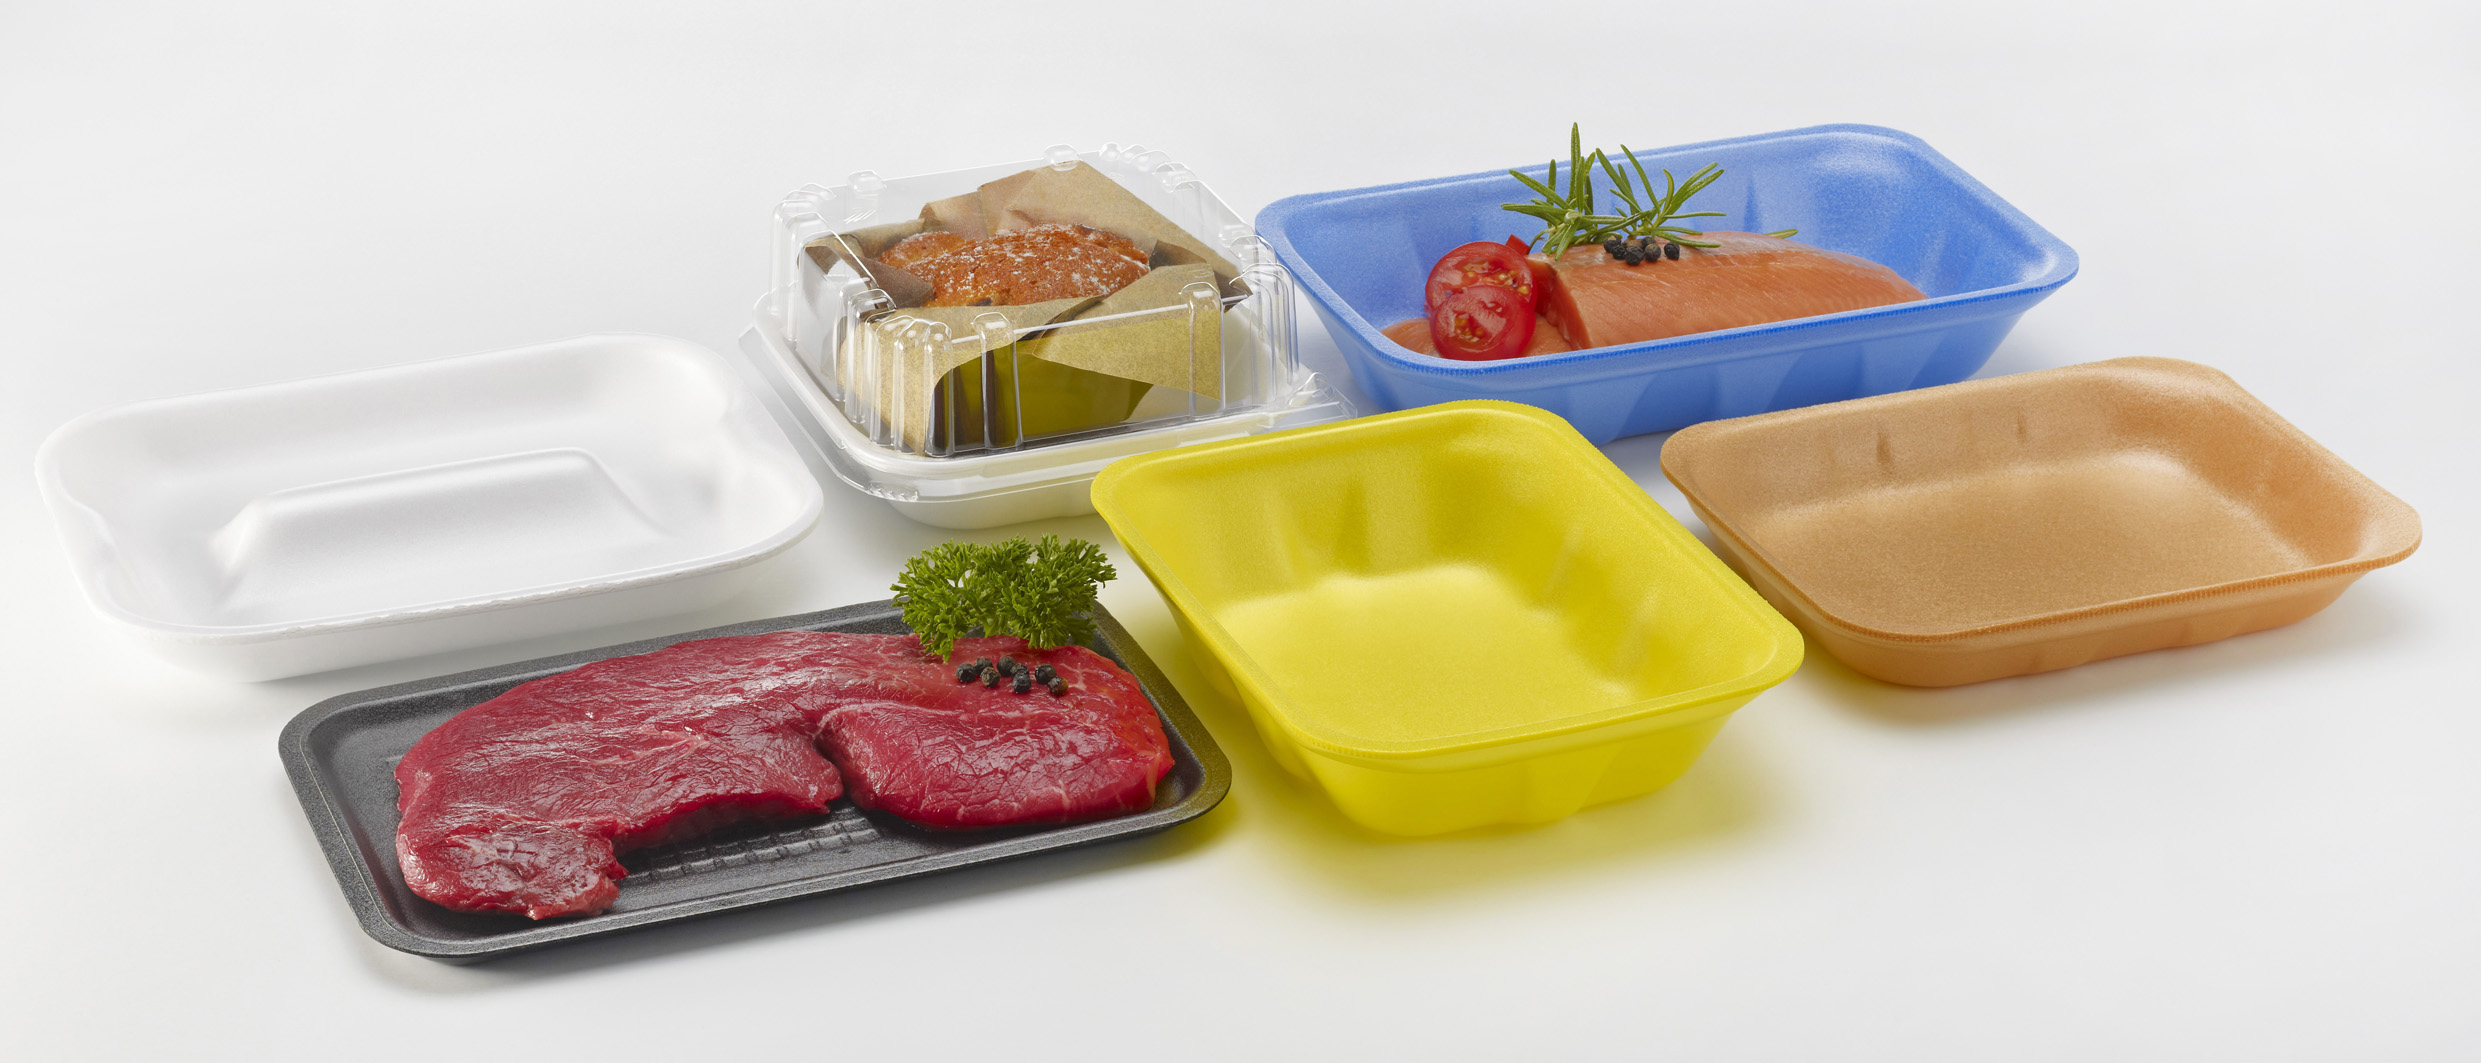 EPS Trays - Secondary Packaging